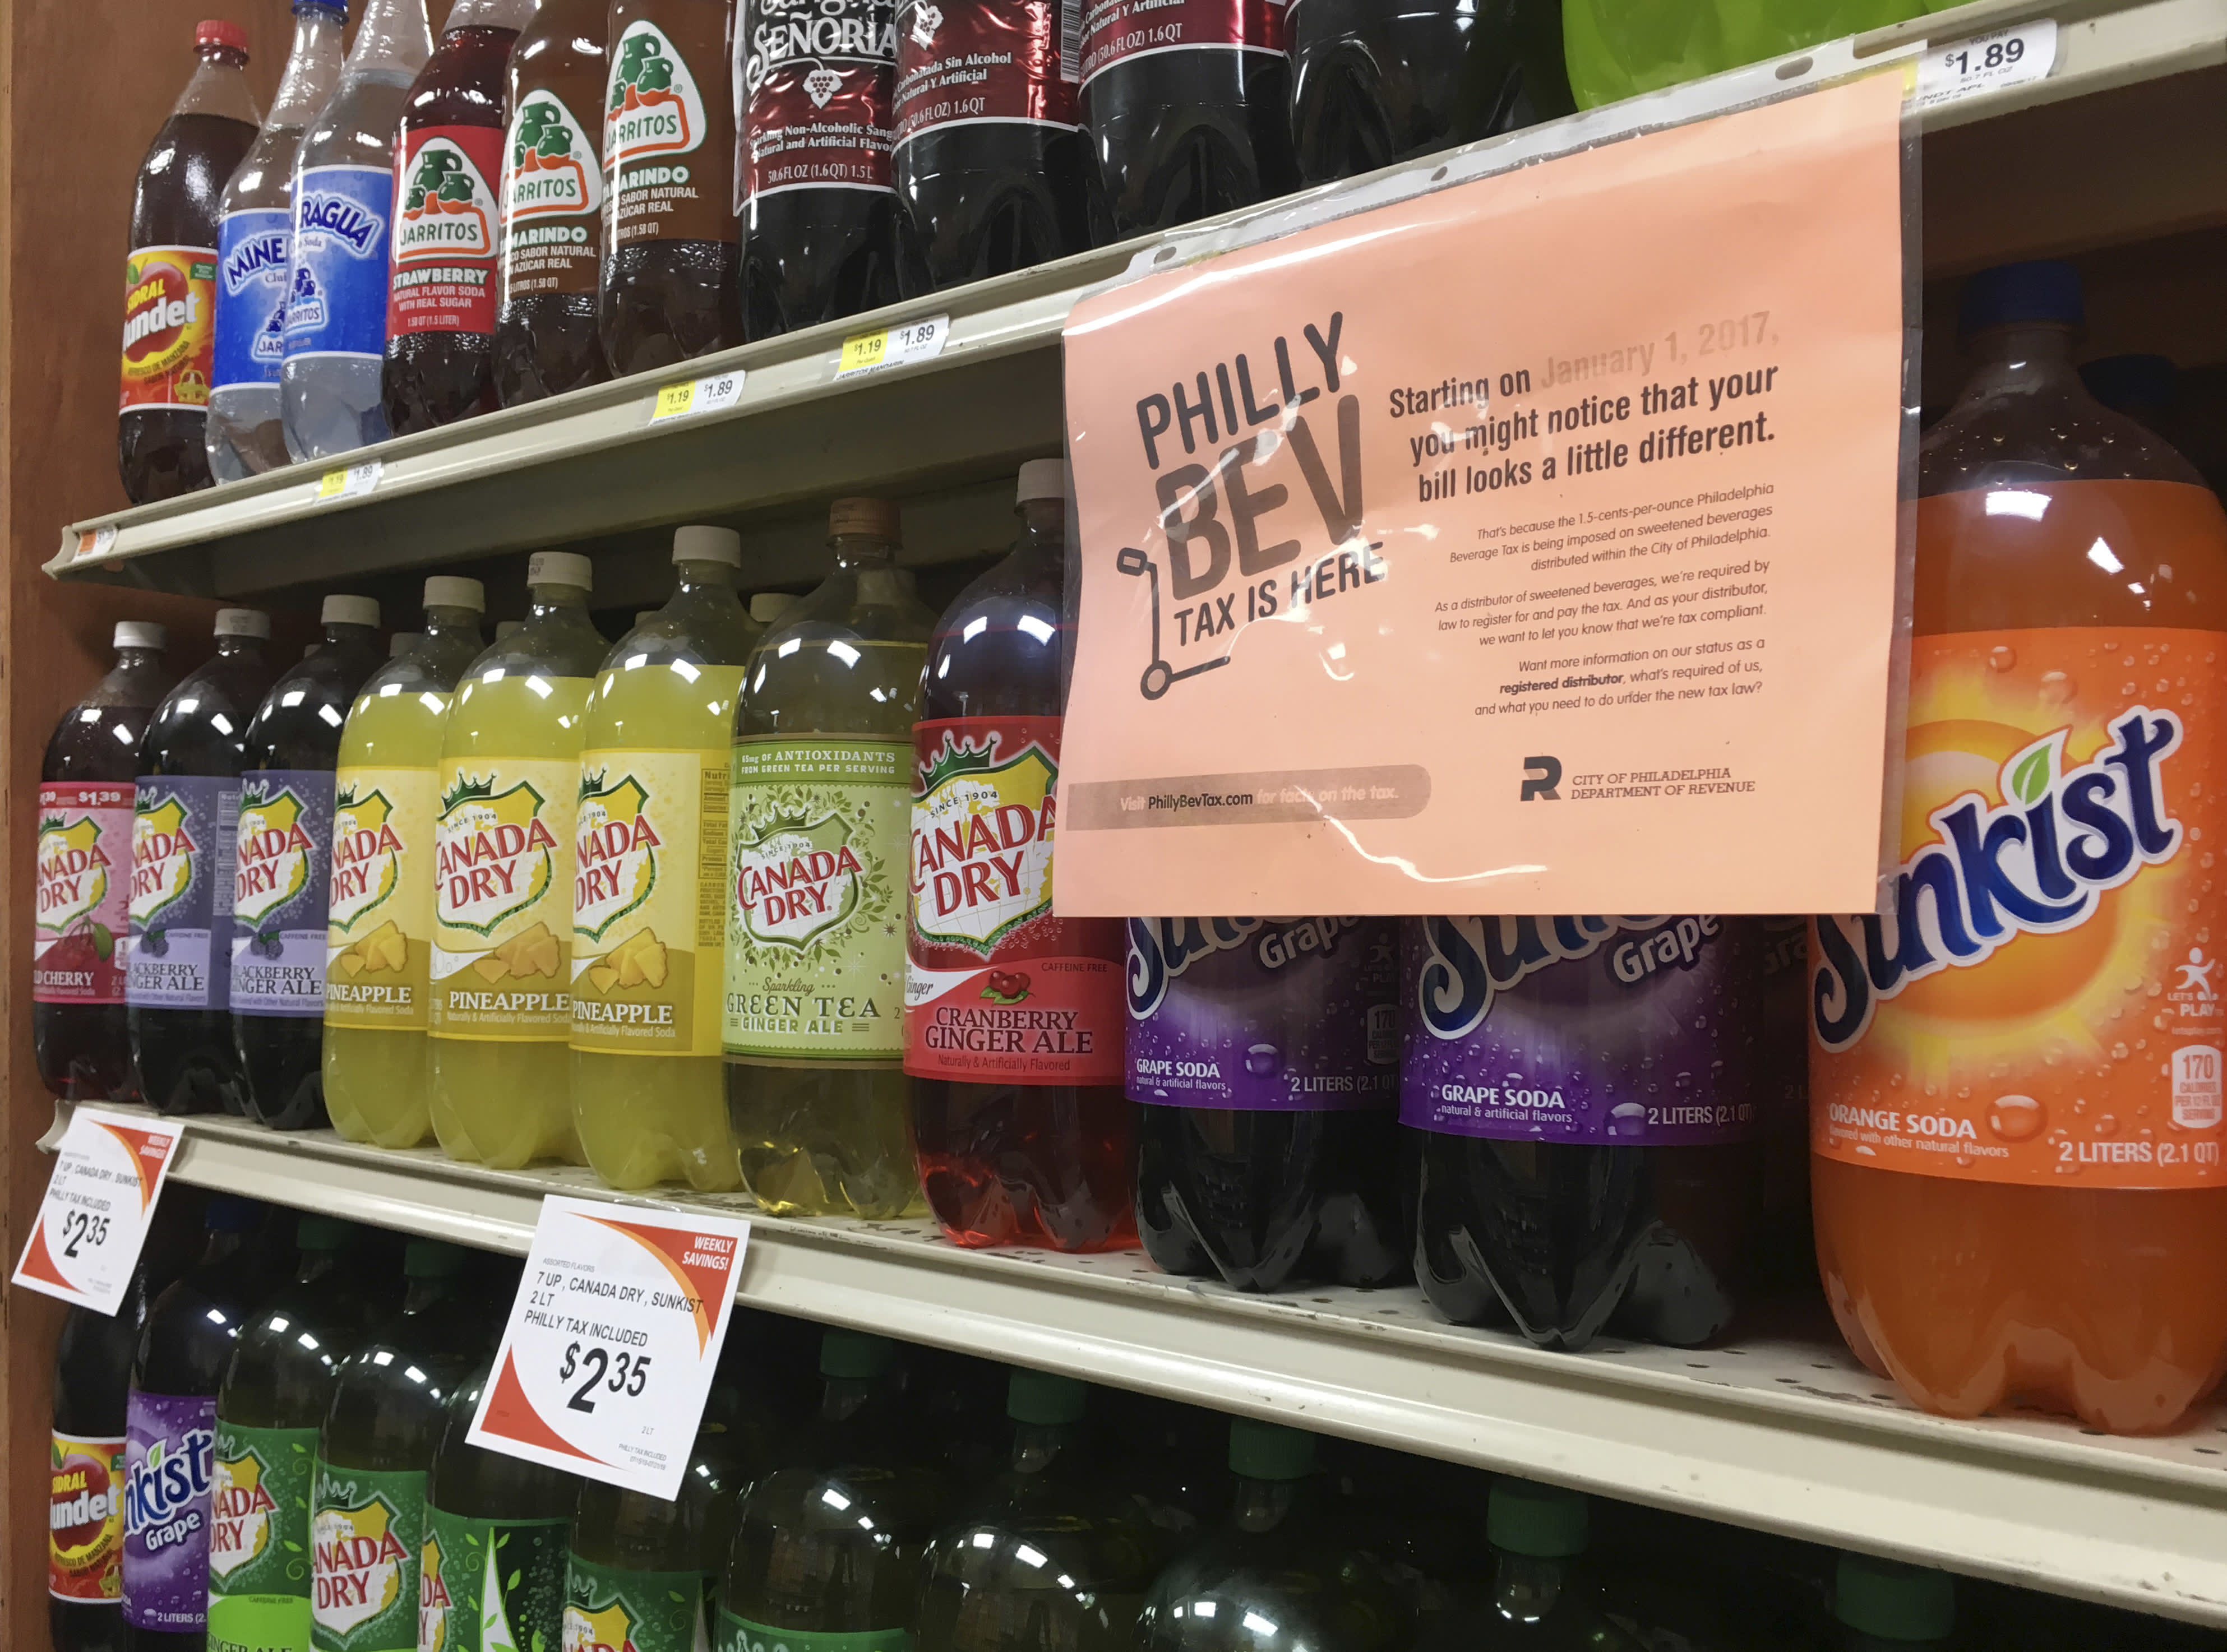 Sugary drink sales in Philadelphia fall 38% after city adopted soda tax, study finds